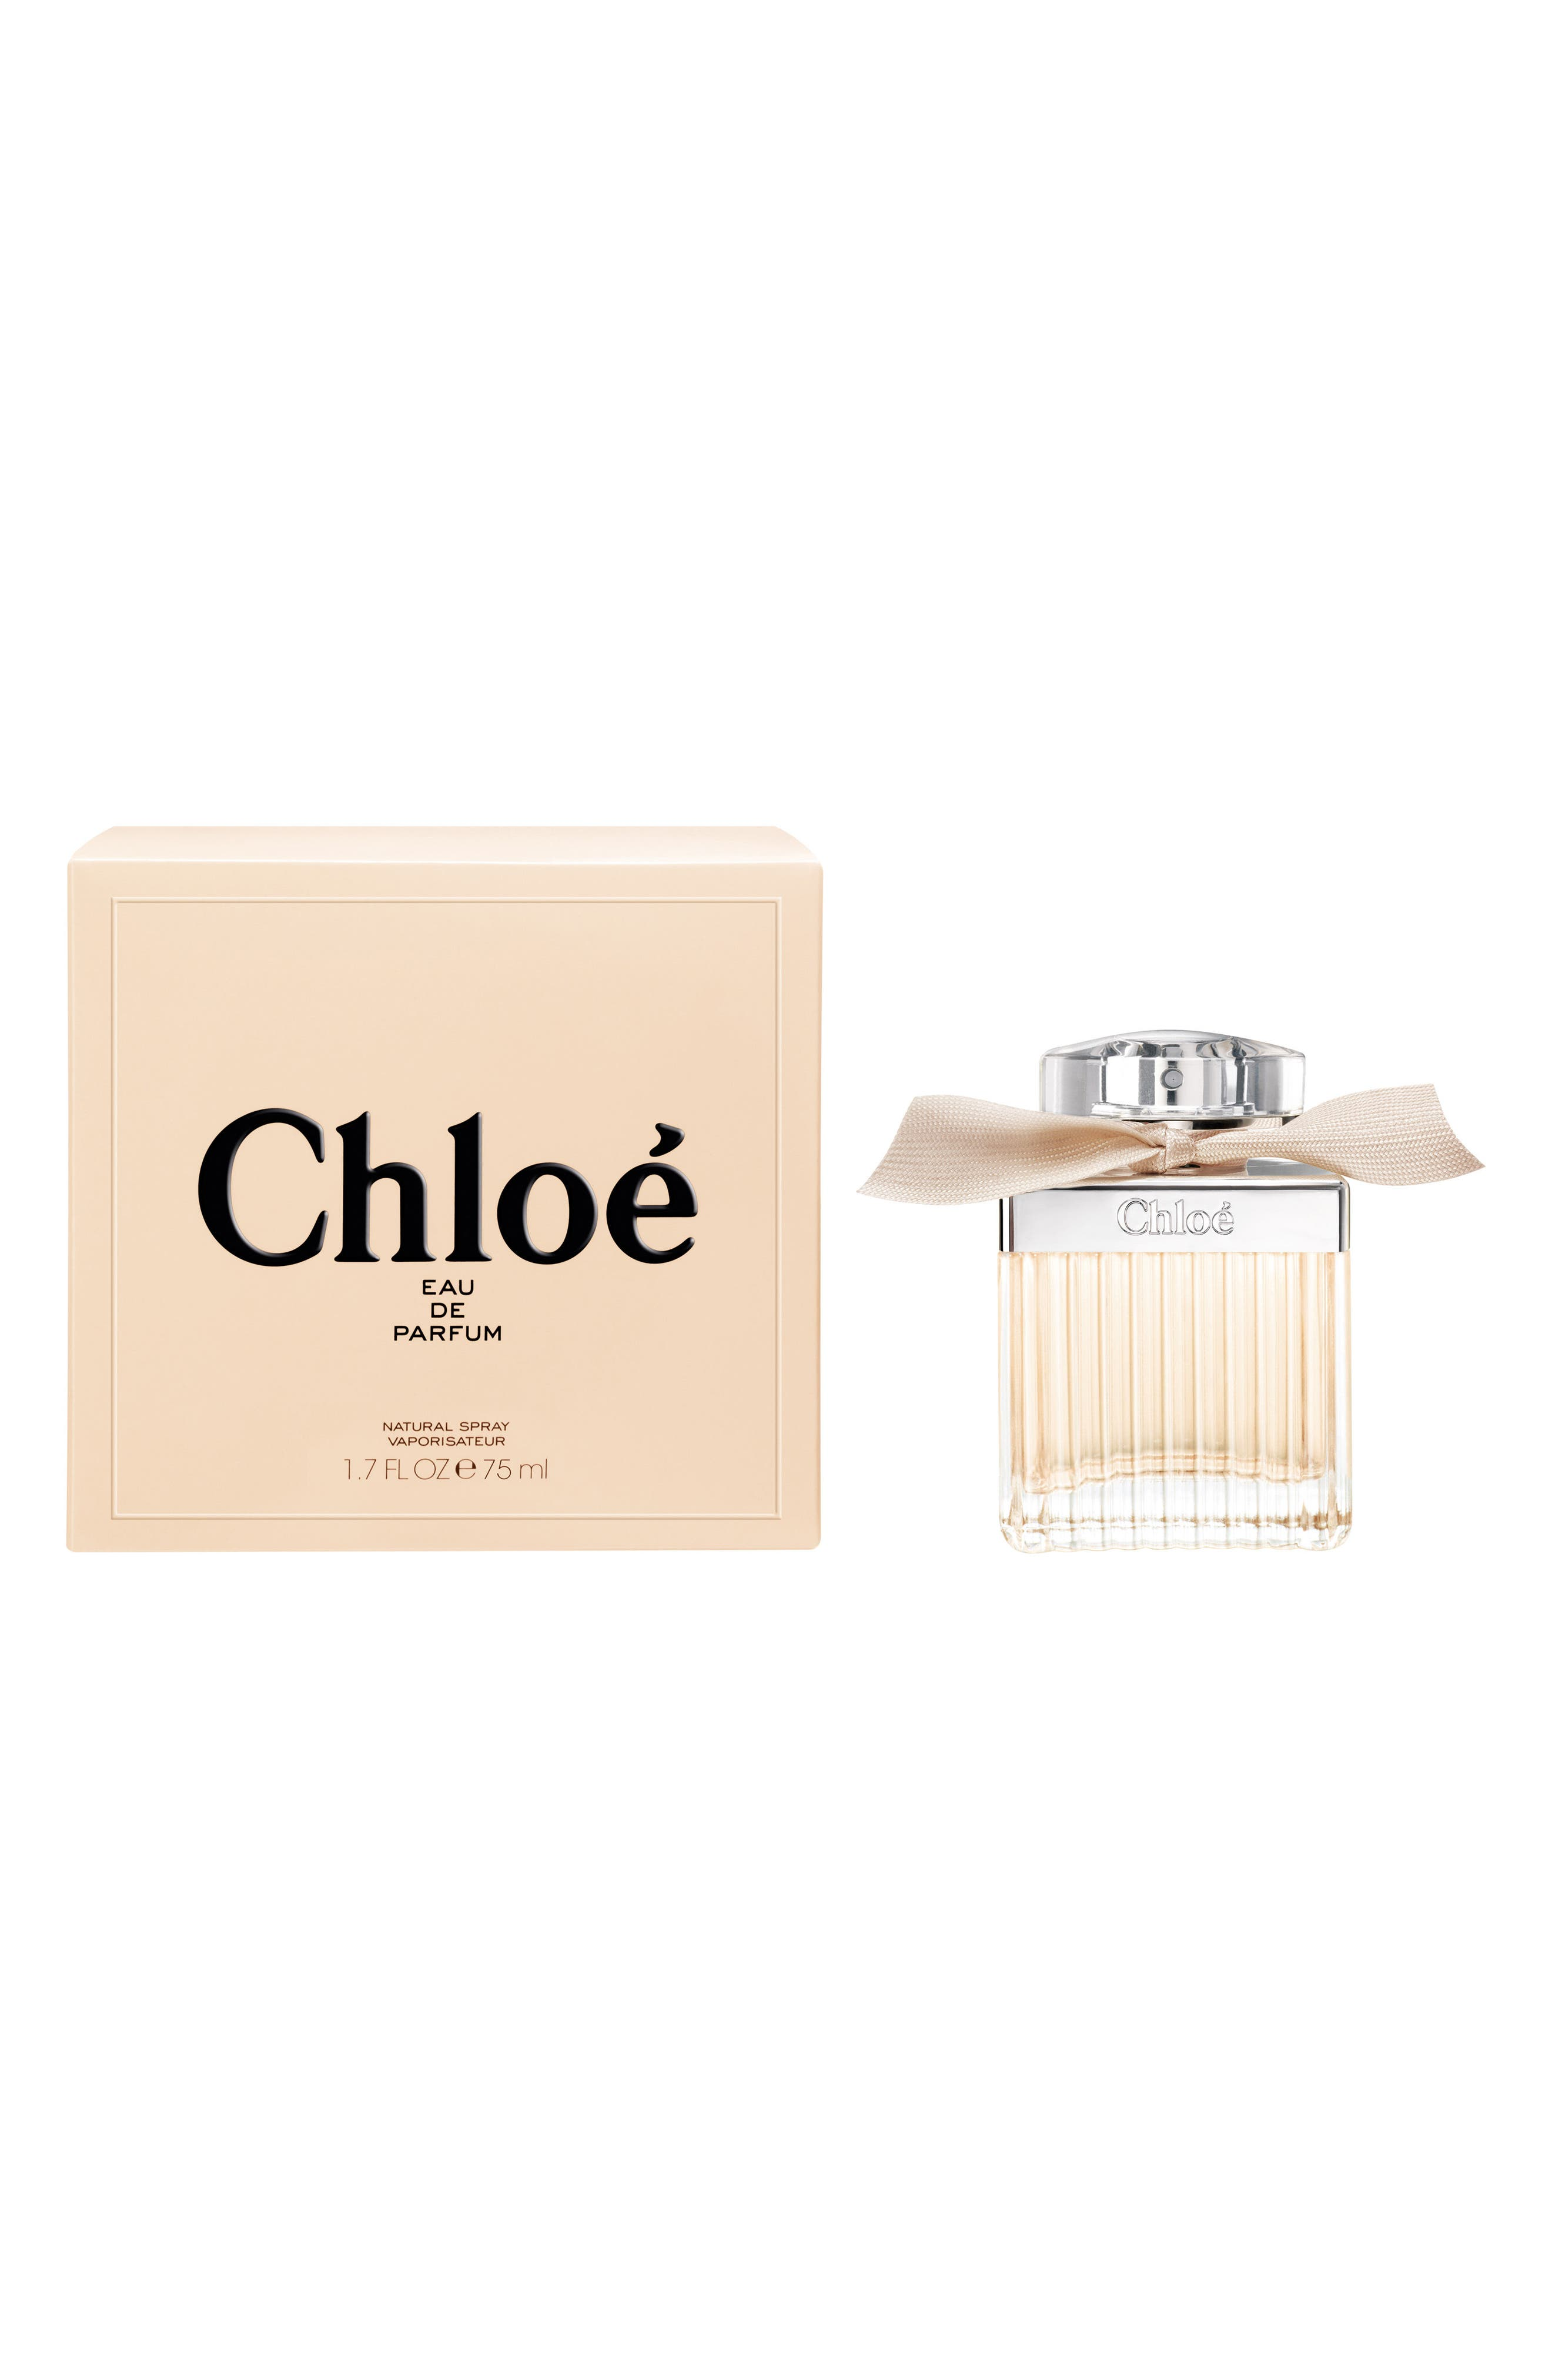 Chloe perfume - a great gift for a woman 19